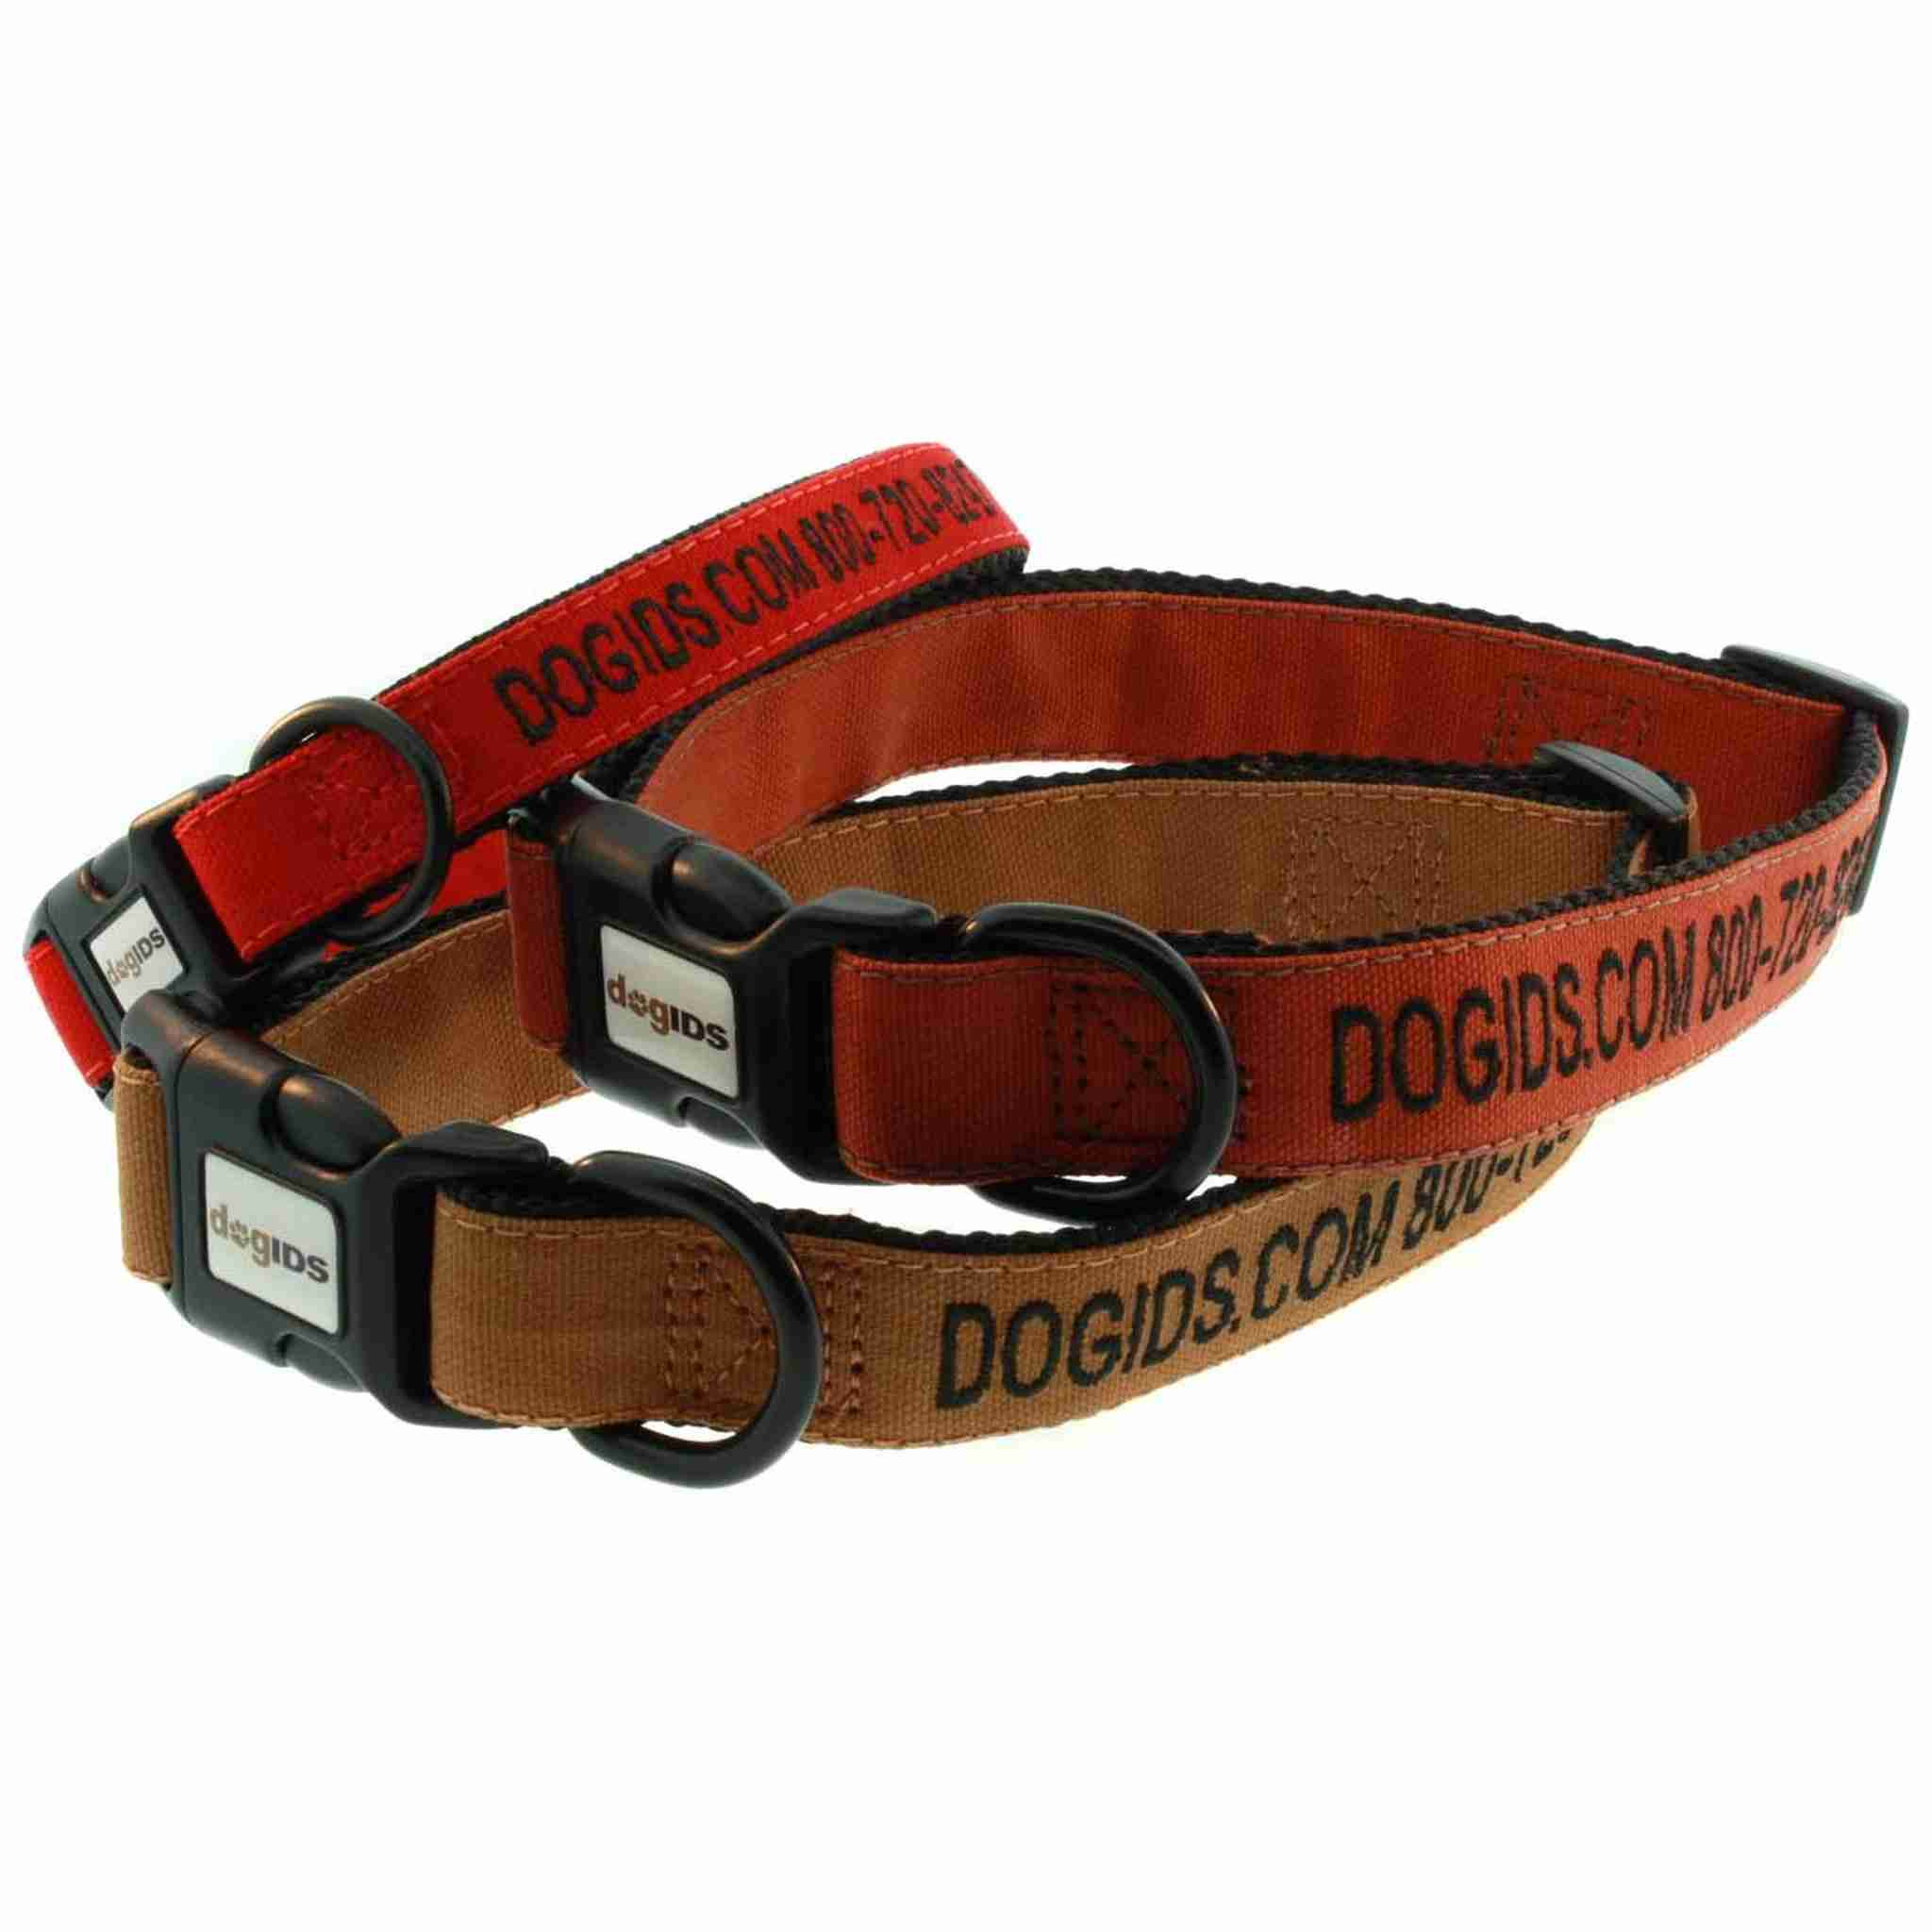 Embroidered Canvas Dog Collars